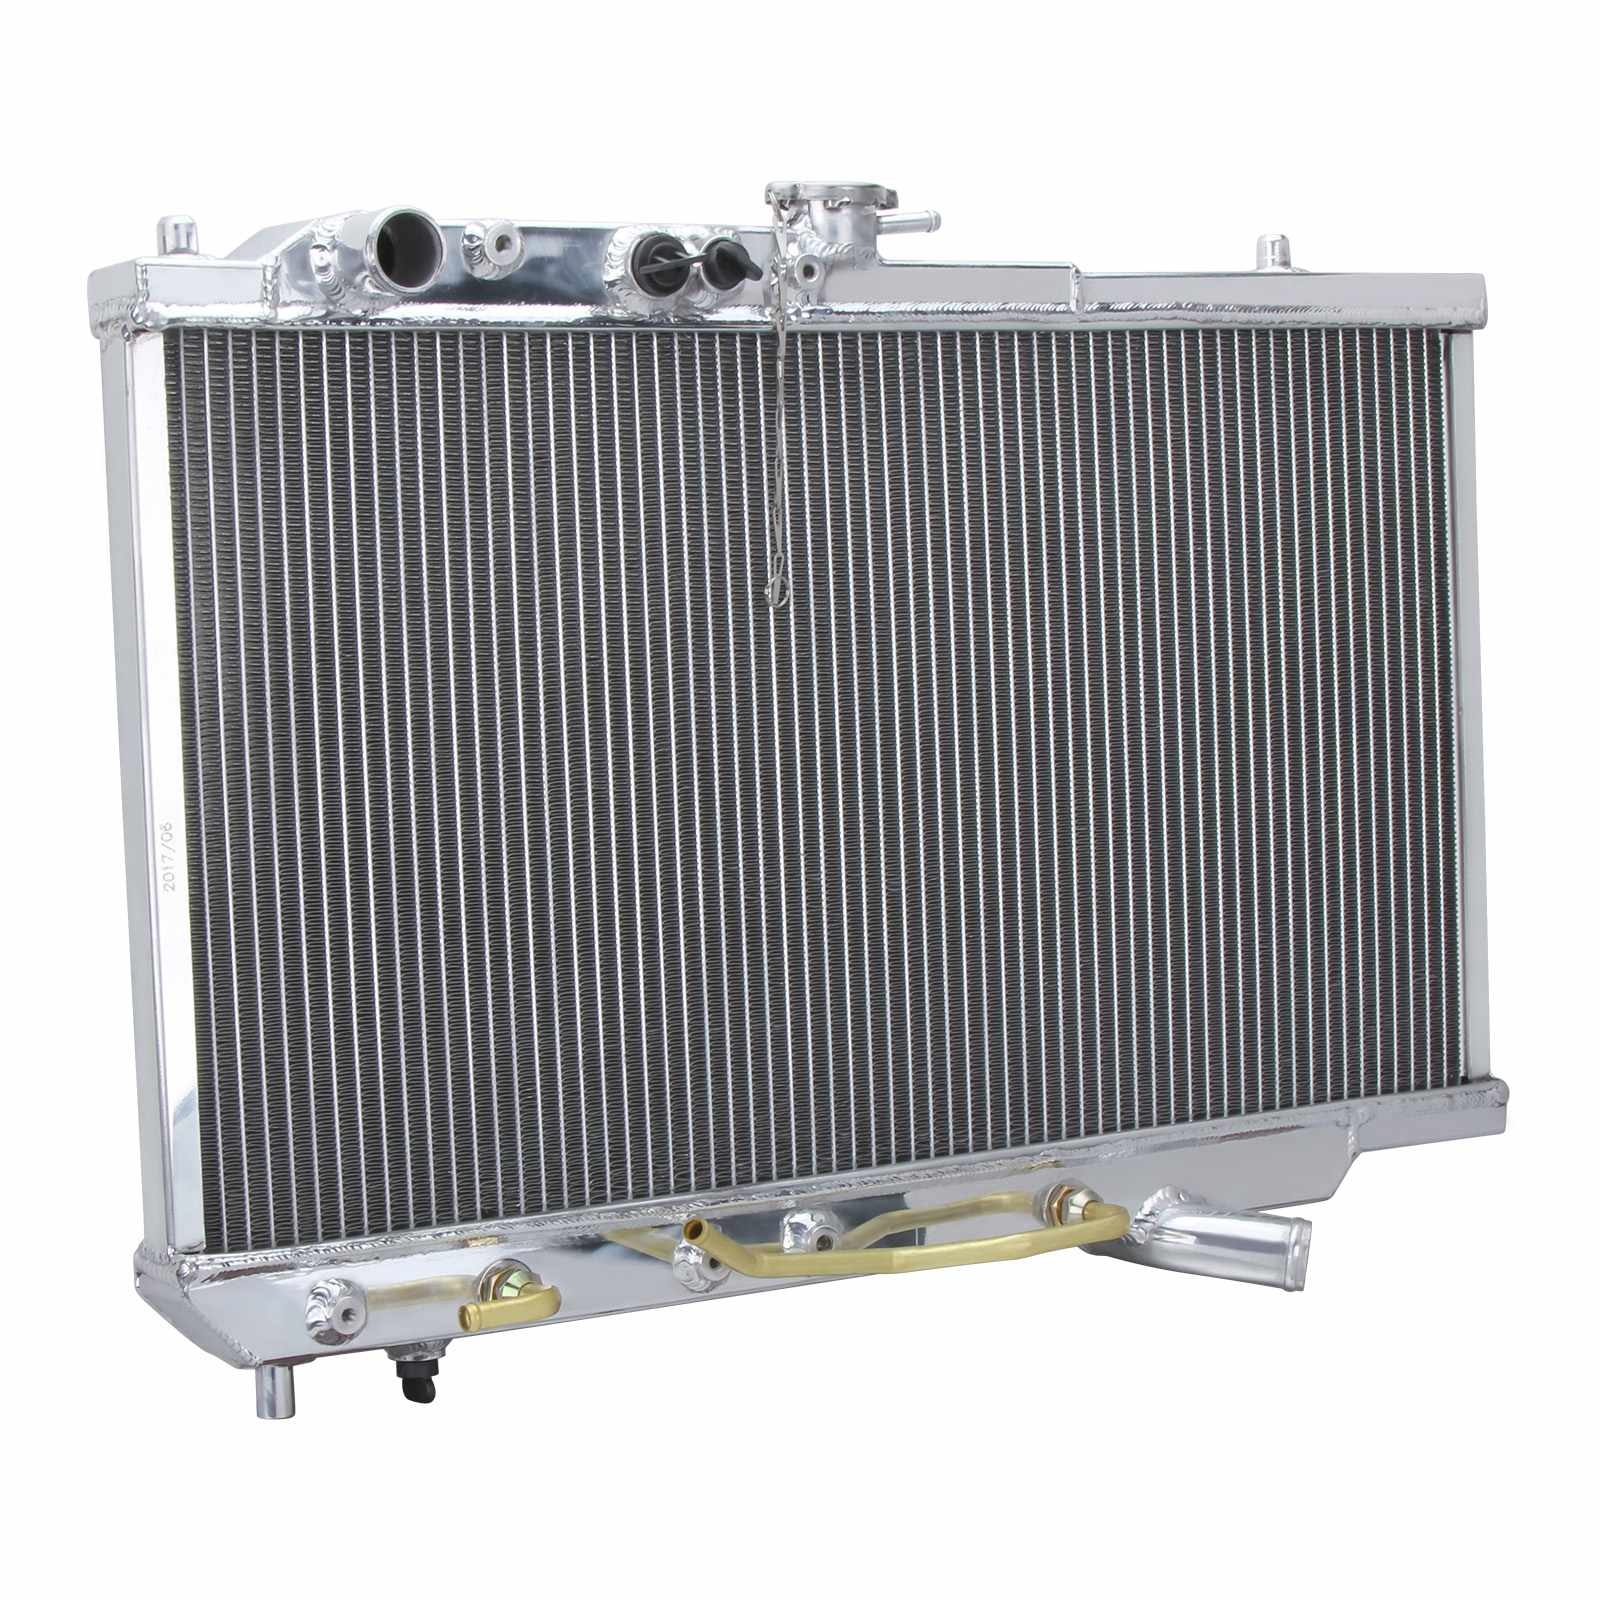 Full Aluminum Radiator for Mazda K323 Protege Asrina Ba 1989-1990 B55715-200D/at/mt